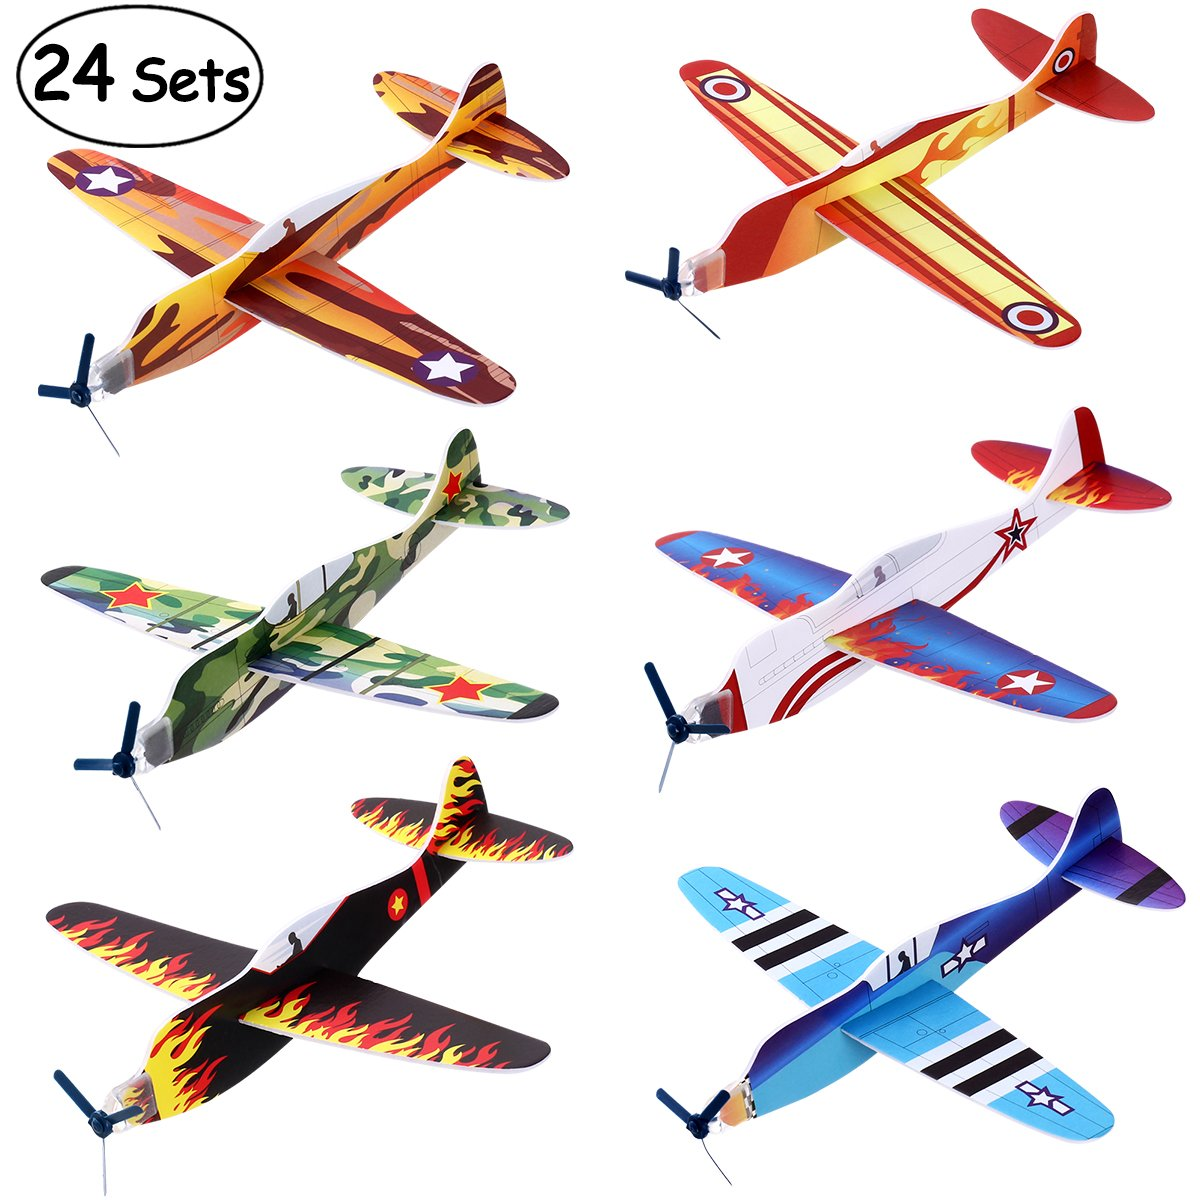 iBaseToy 24 Pack Flying Glider Plane - 8'' Long, 6 Different Designs, Sturdy Construction, Easy Assembly - Party Favors for Birthday Party, Carnival Prizes, School Classroom Rewards for Kids Boys